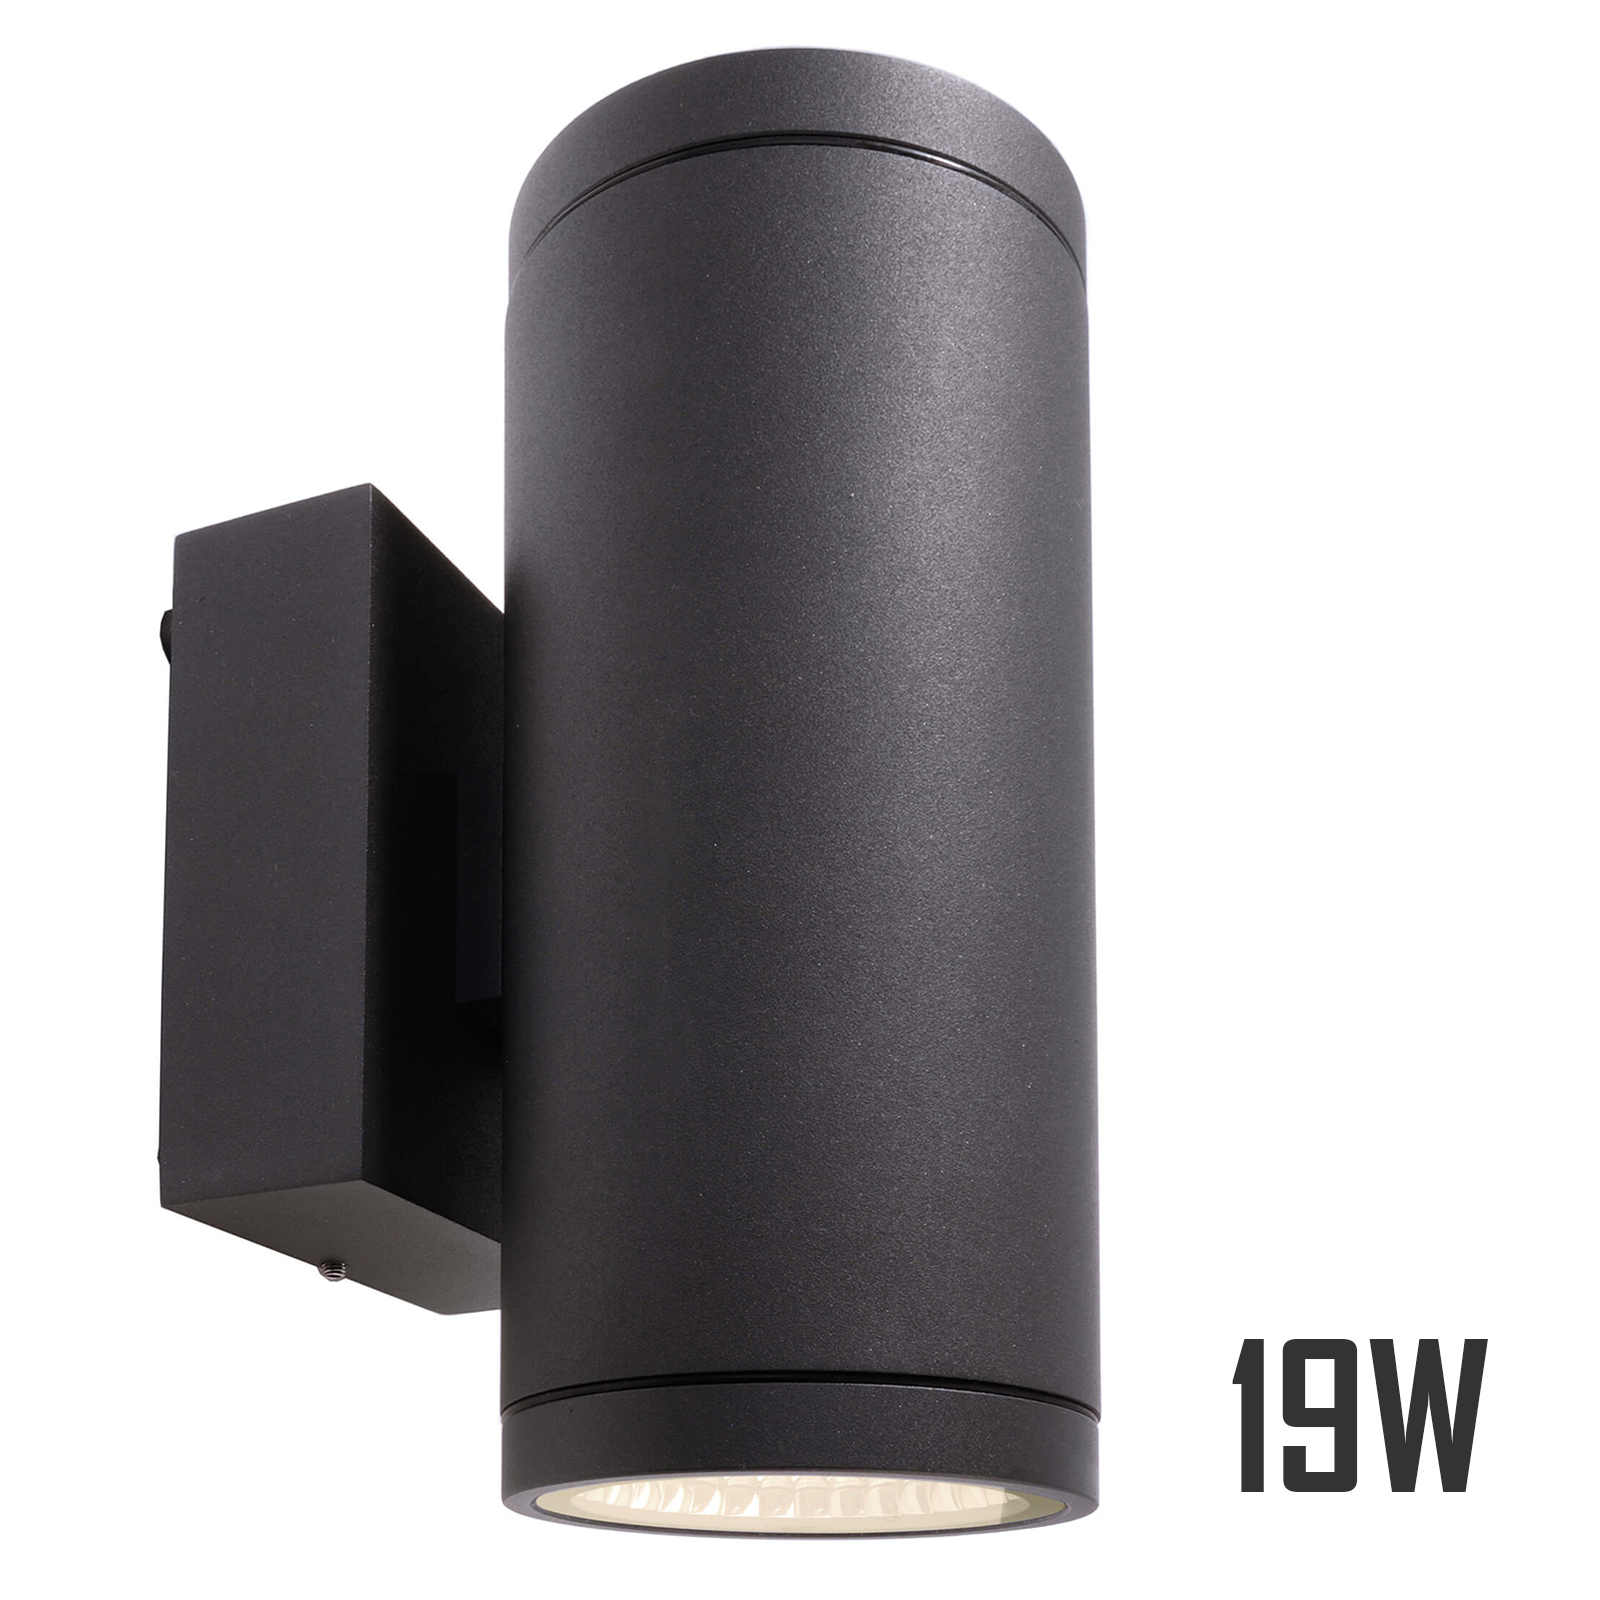 Lamp double LED 19W light wall applique garden outdoor 3000K 1620lm IP55